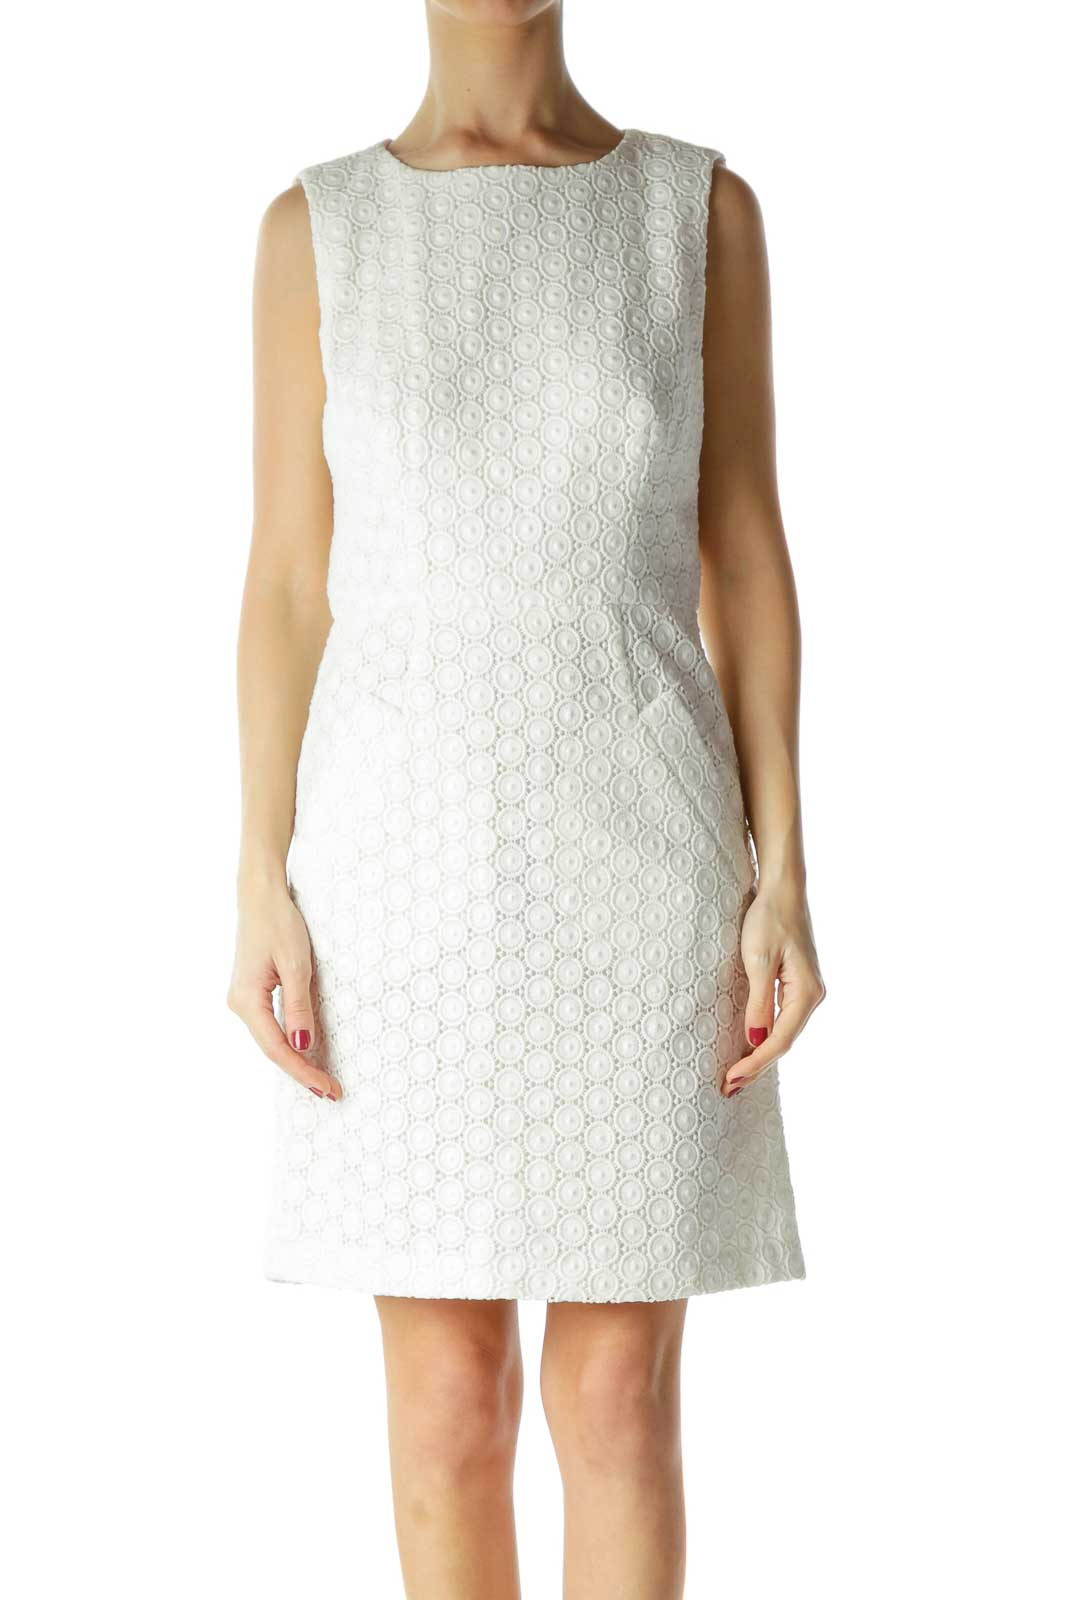 White Slightly Metallic Knit Dress with Pockets Front